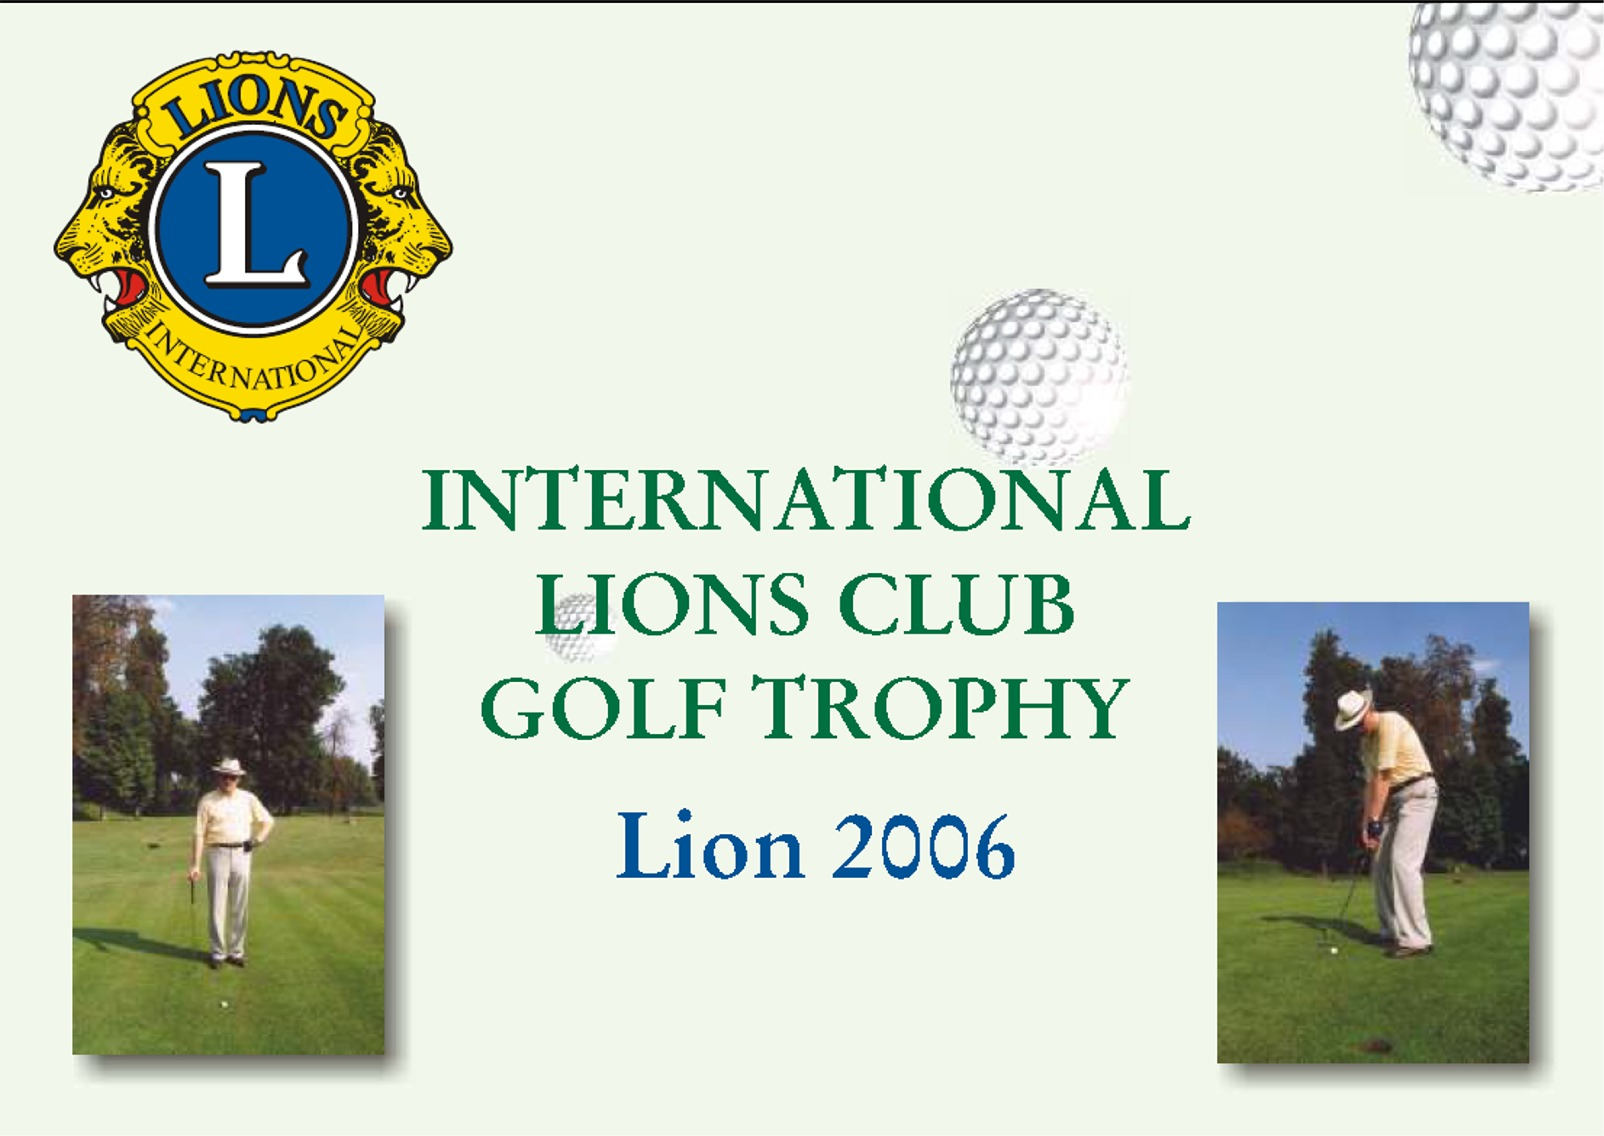 i-lions-clubs-golf-trophy-23-09-2006-r